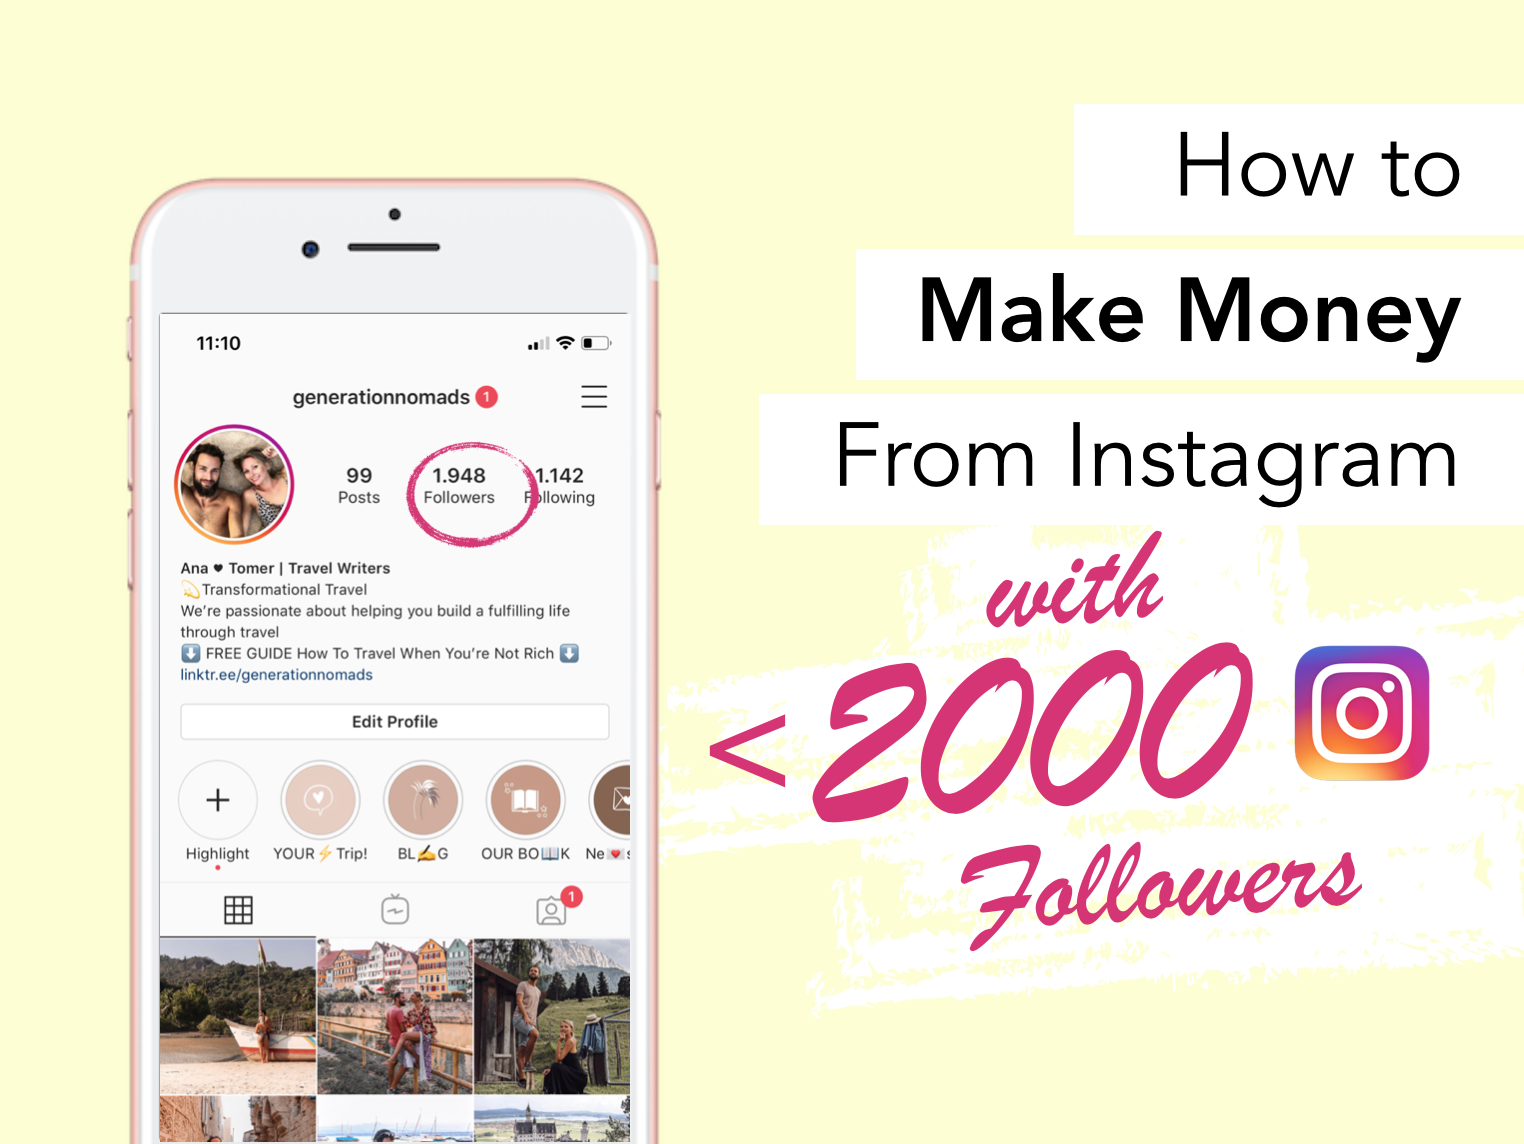 How To Make Money From Instagram With Under 2000 Followers in 2019